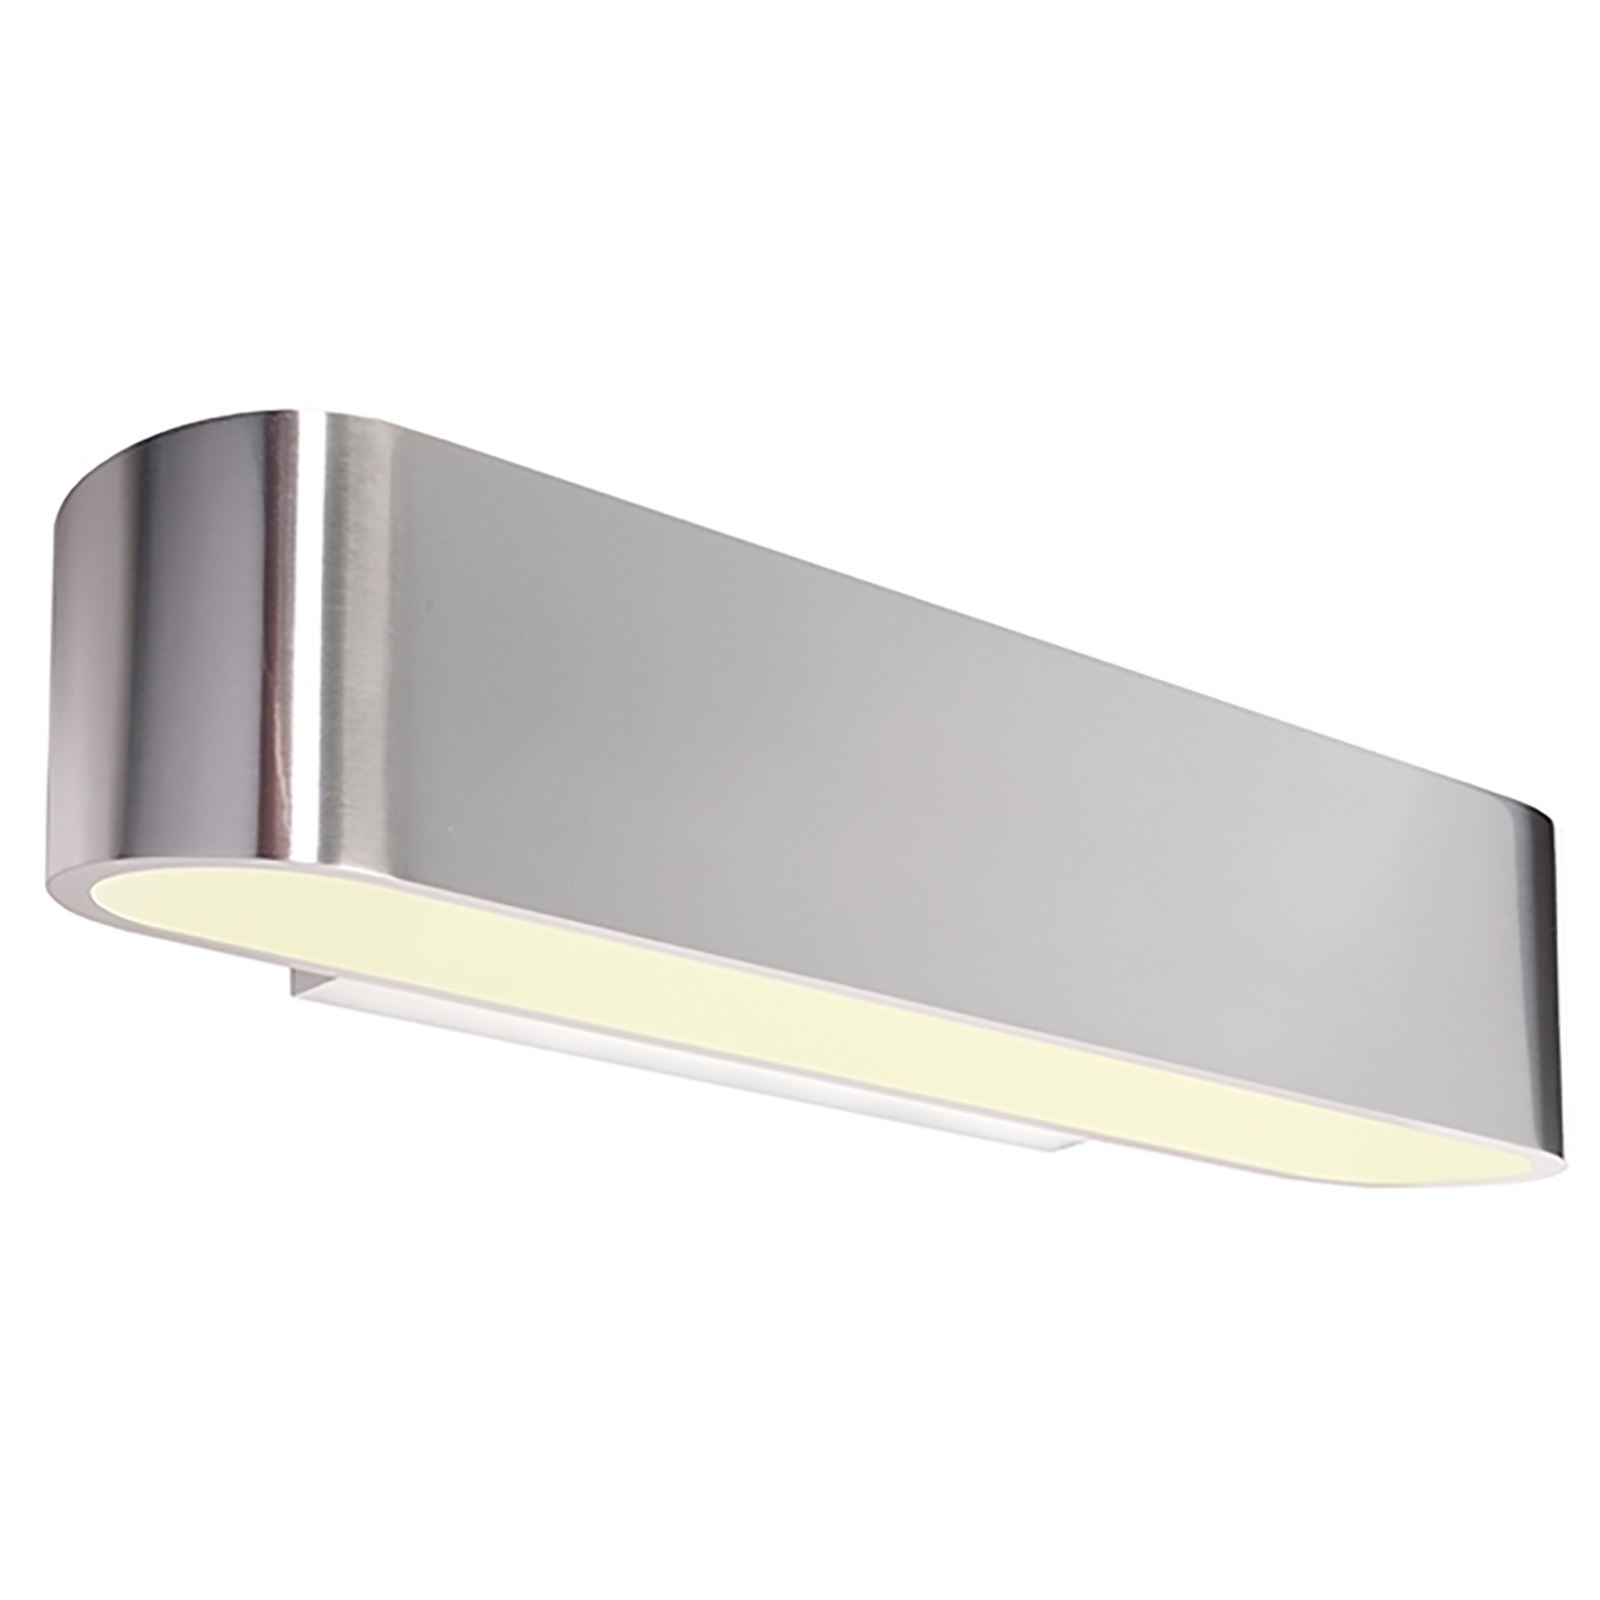 Applique slim LED aluminium chrome lamp double wall light R7S 118mm 220V